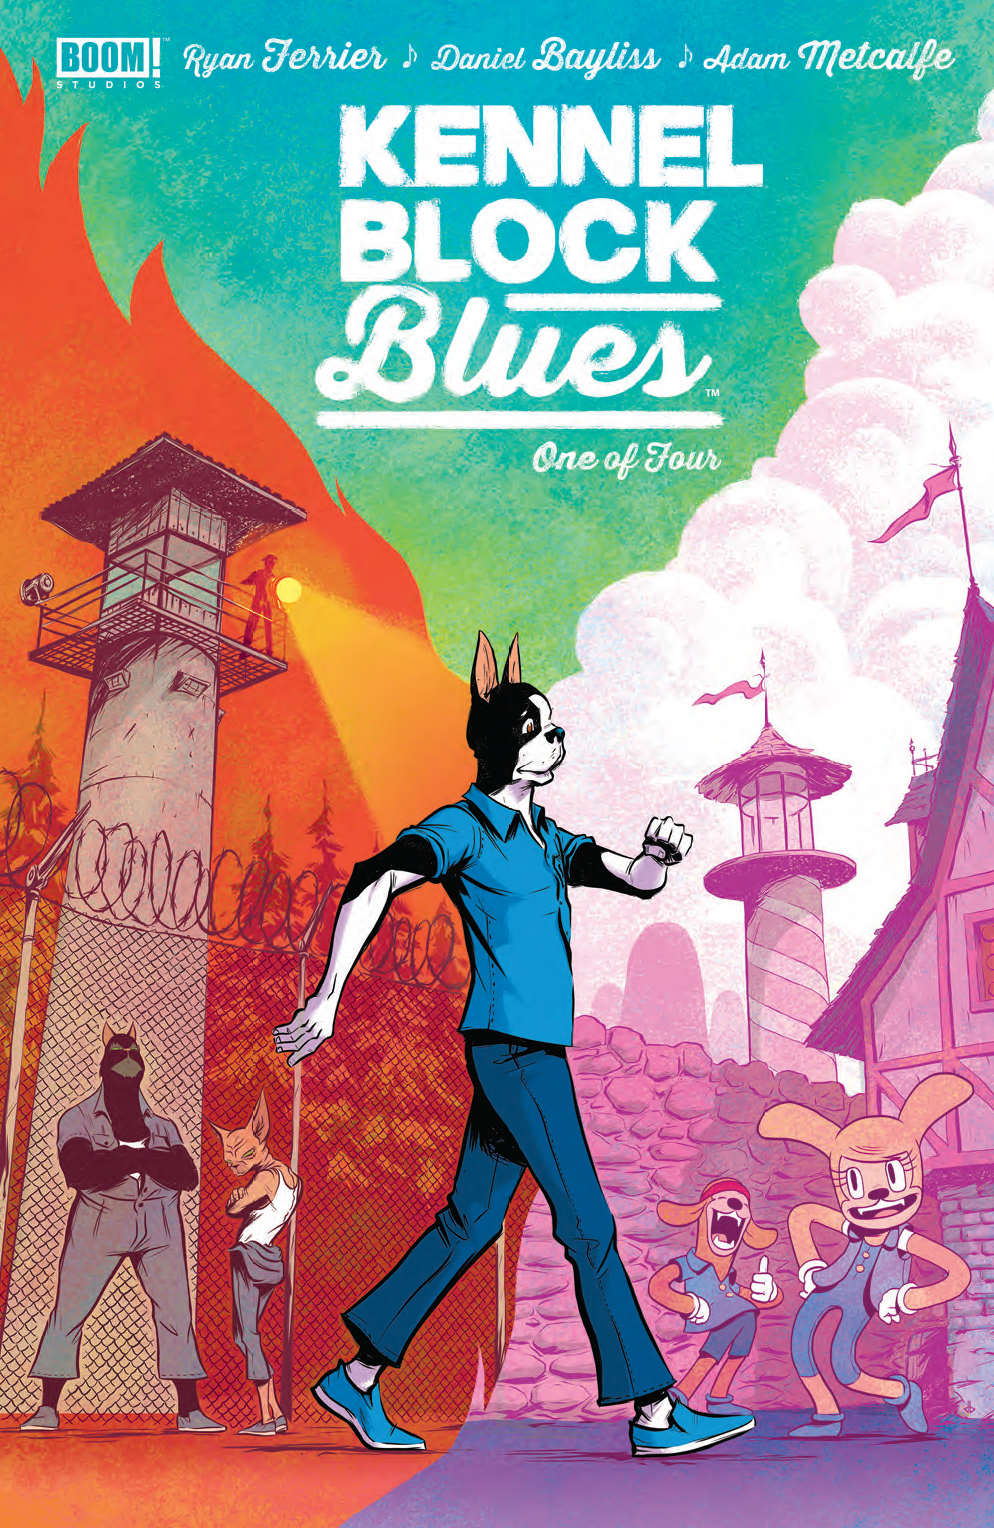 Kennel Block Blues #1 Review